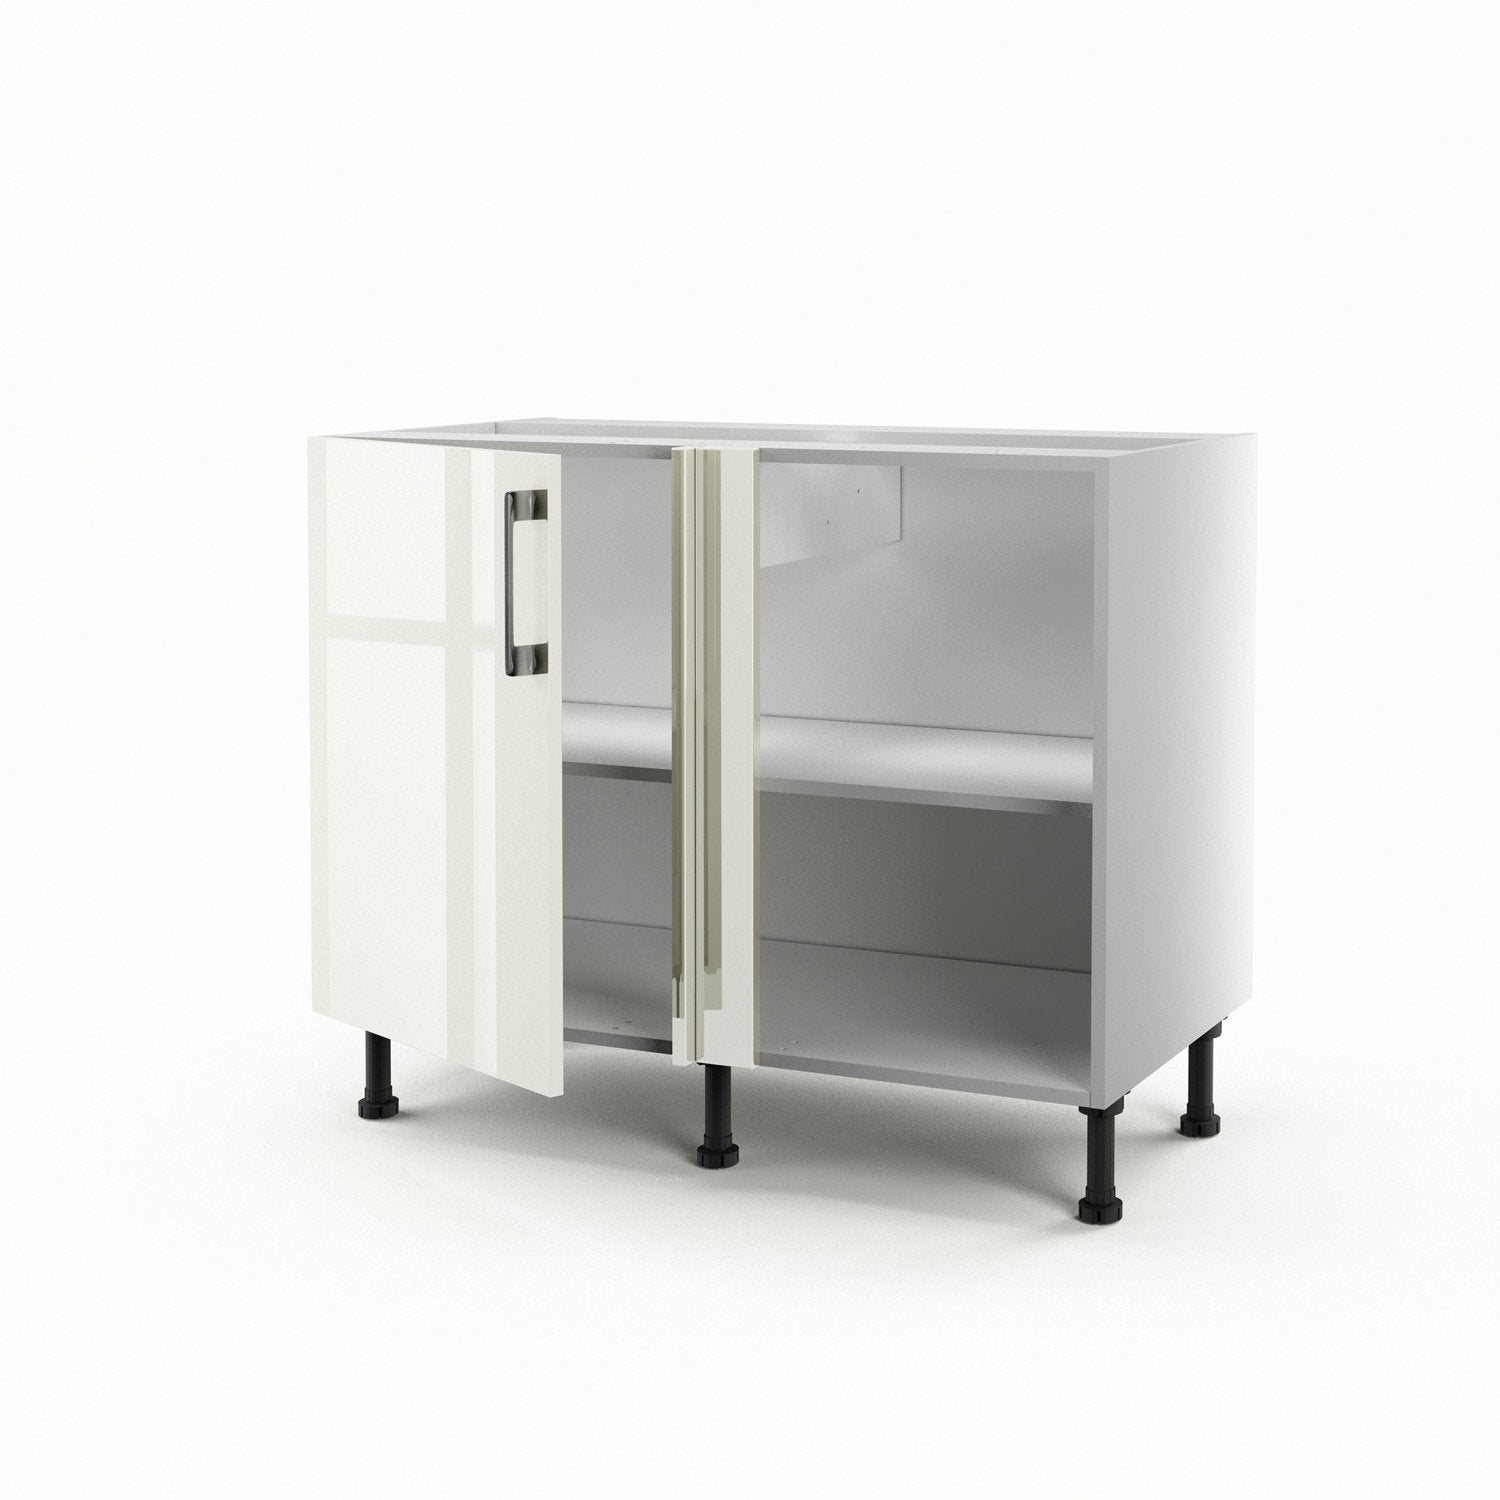 meuble de cuisine bas d 39 angle beige 1 porte perle x x cm leroy merlin. Black Bedroom Furniture Sets. Home Design Ideas